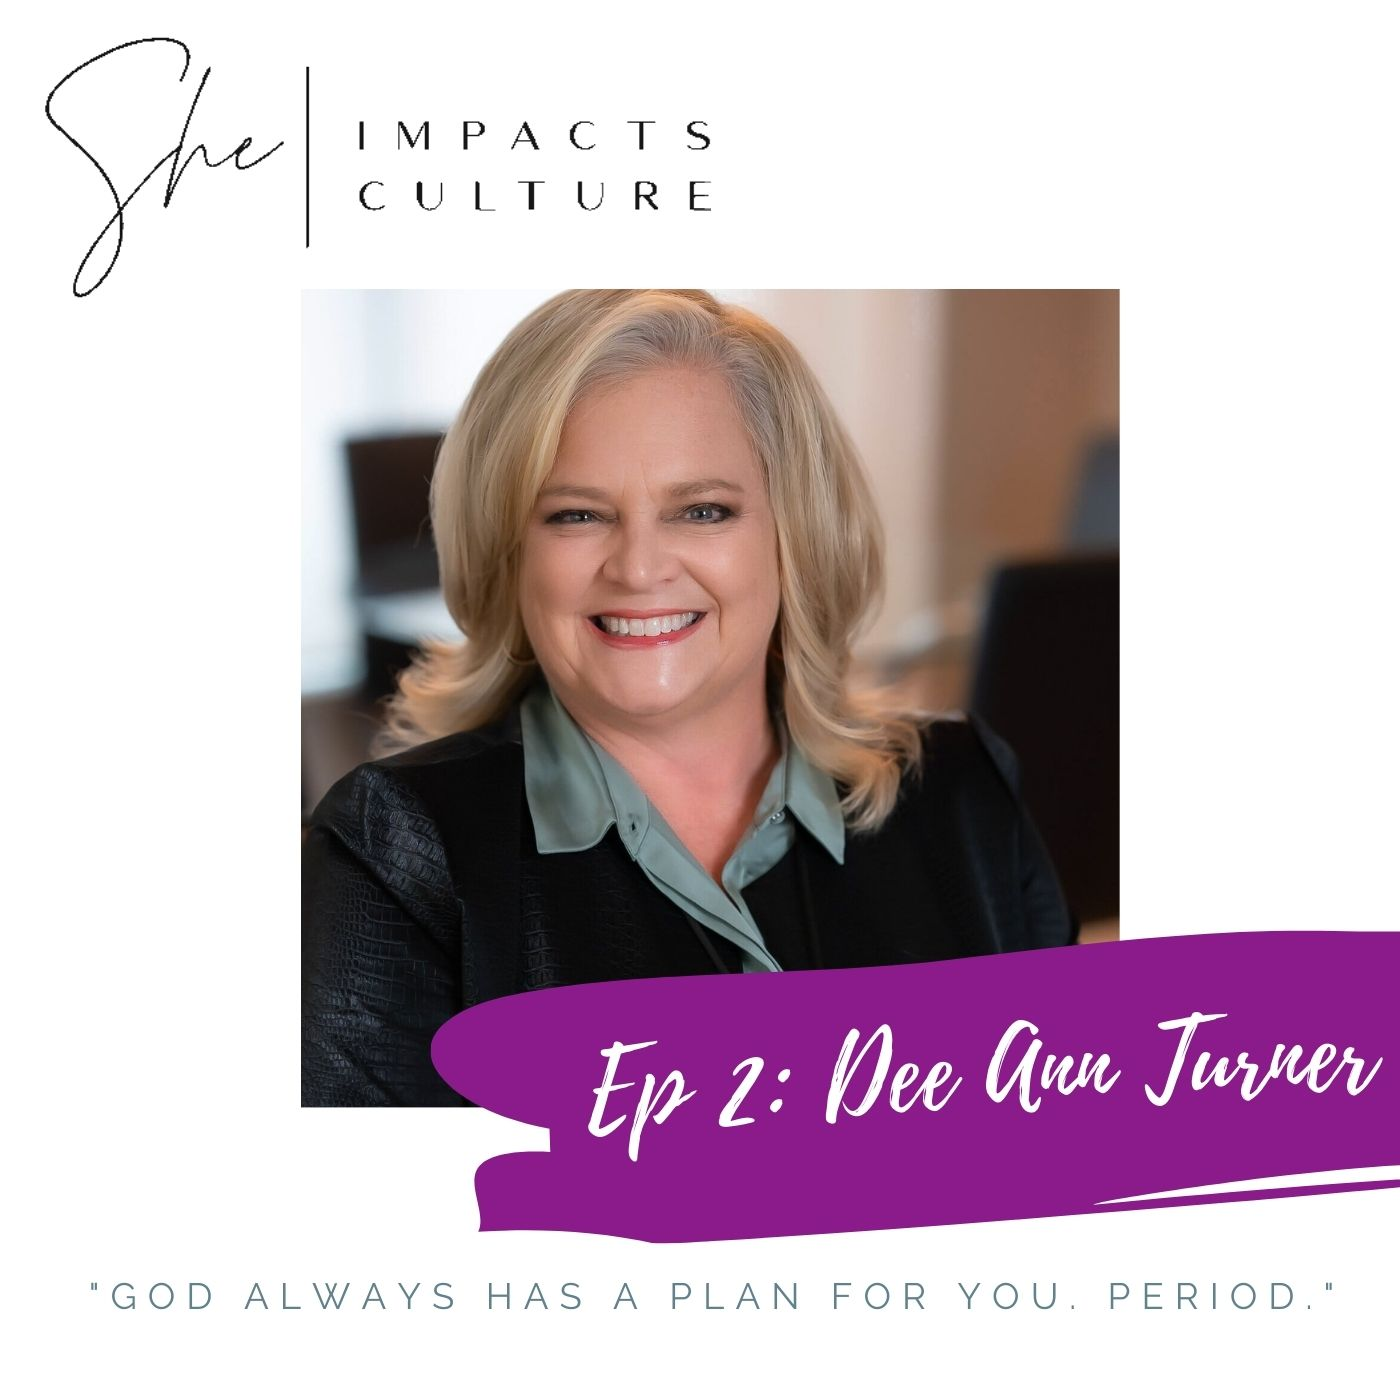 She Impacts Culture Podcast: Dee Ann Turner Episode 2